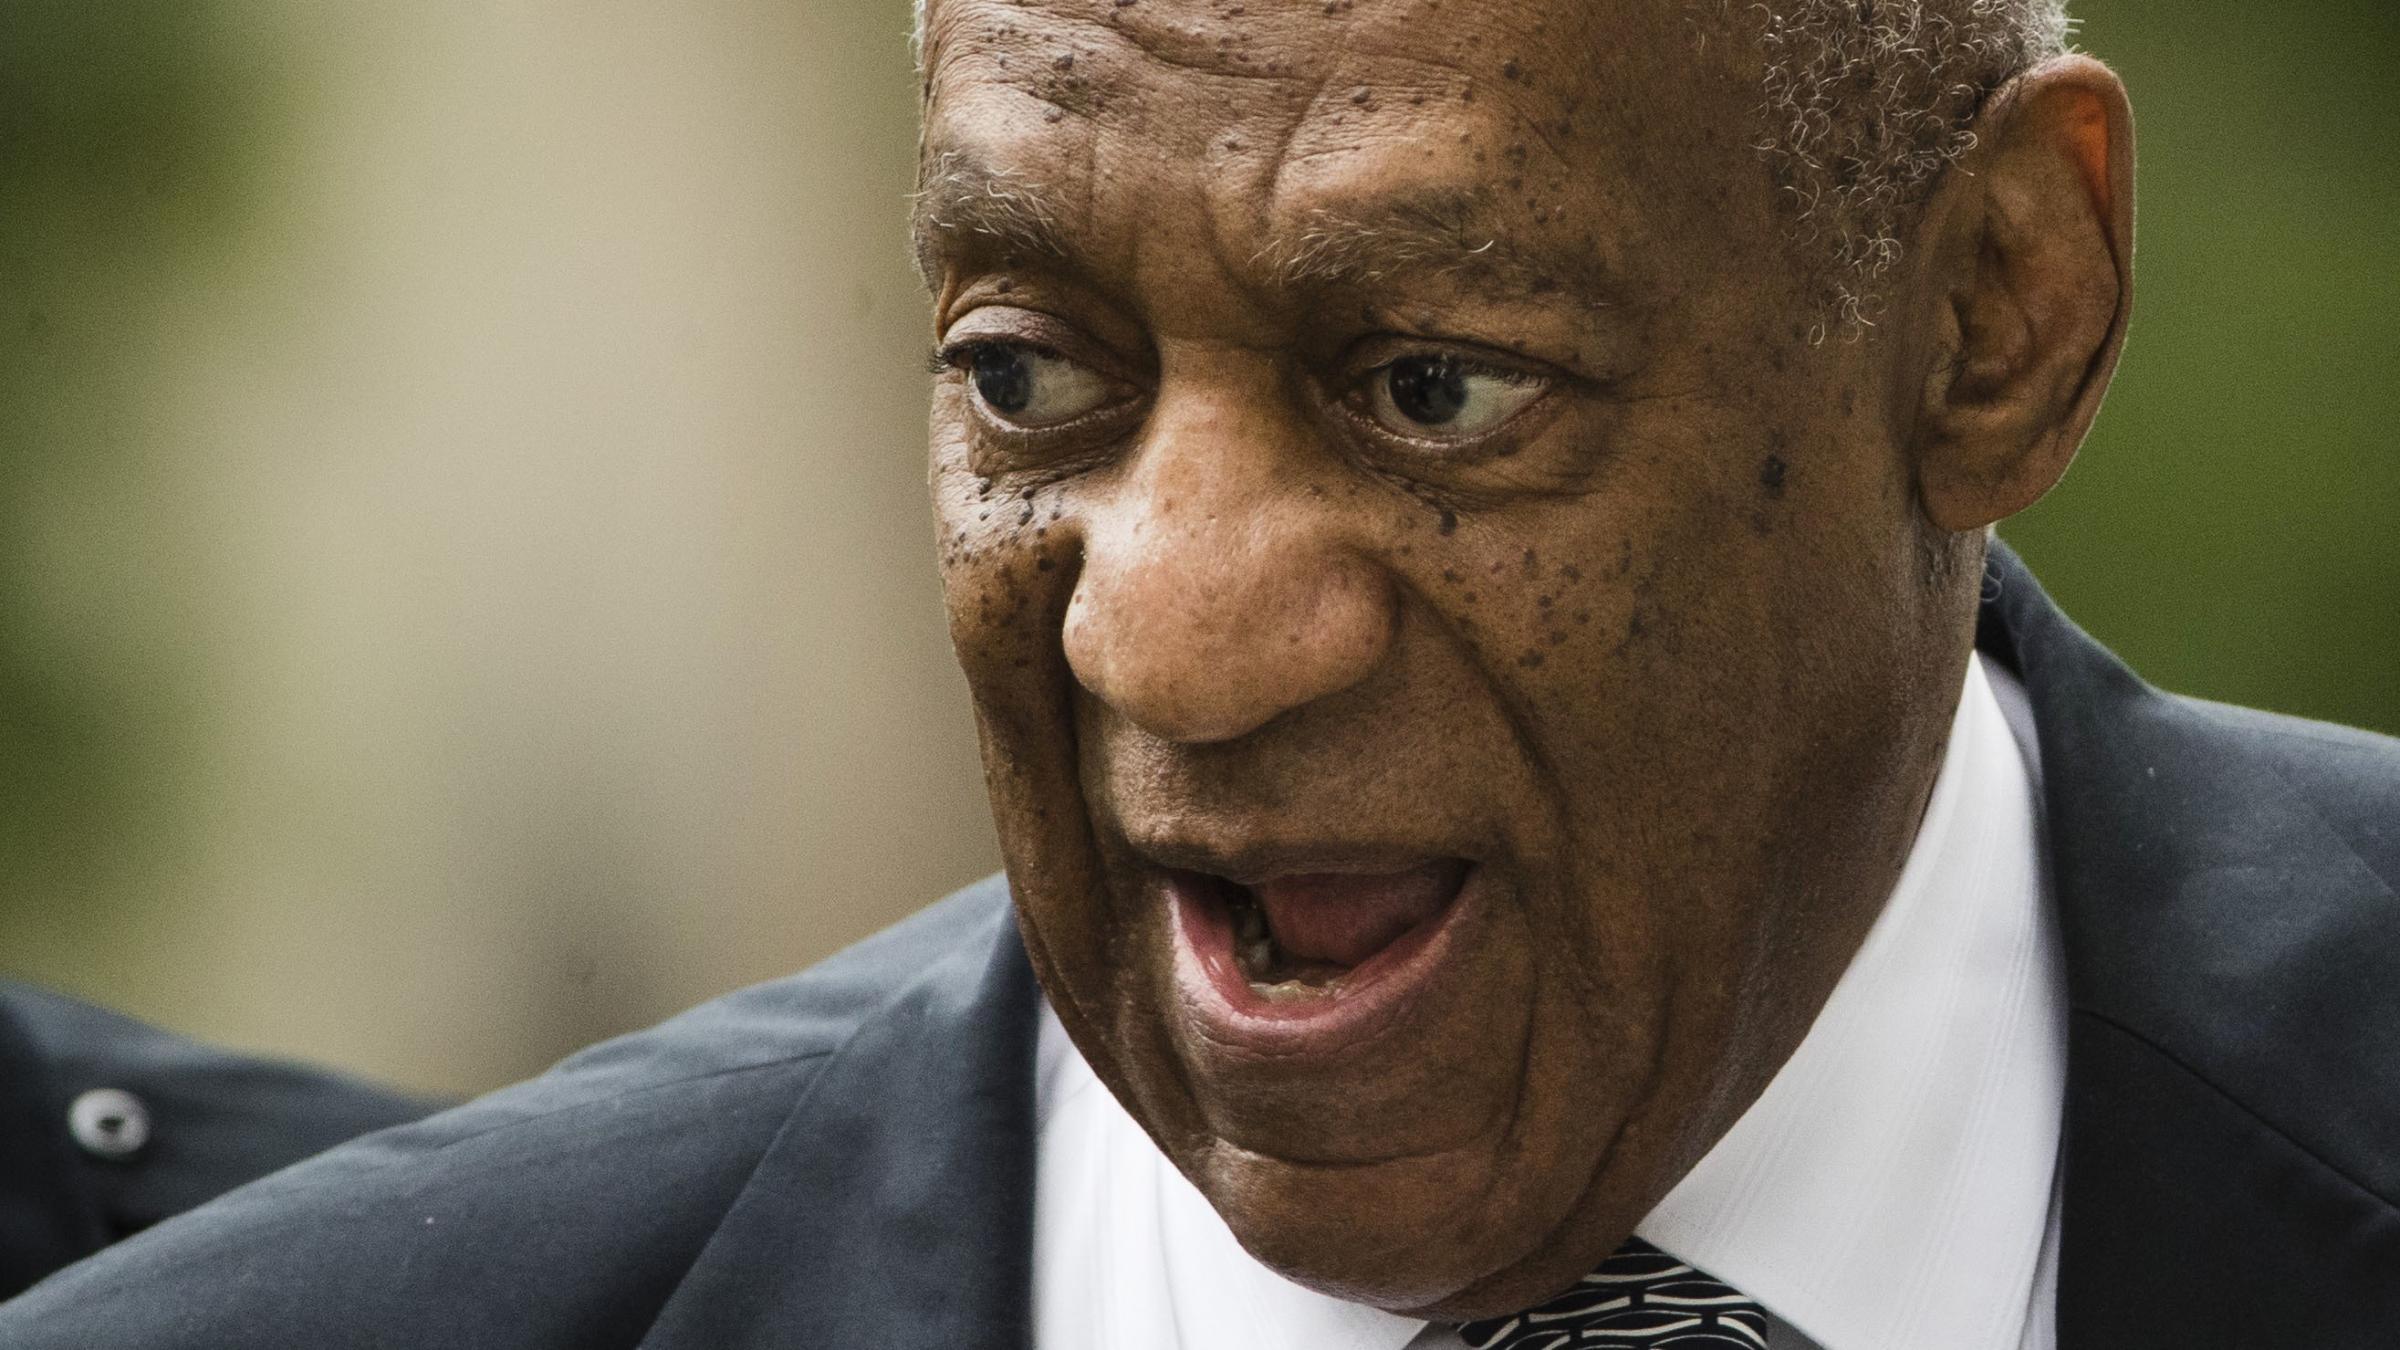 Cosby jury hears about his use of quaaludes